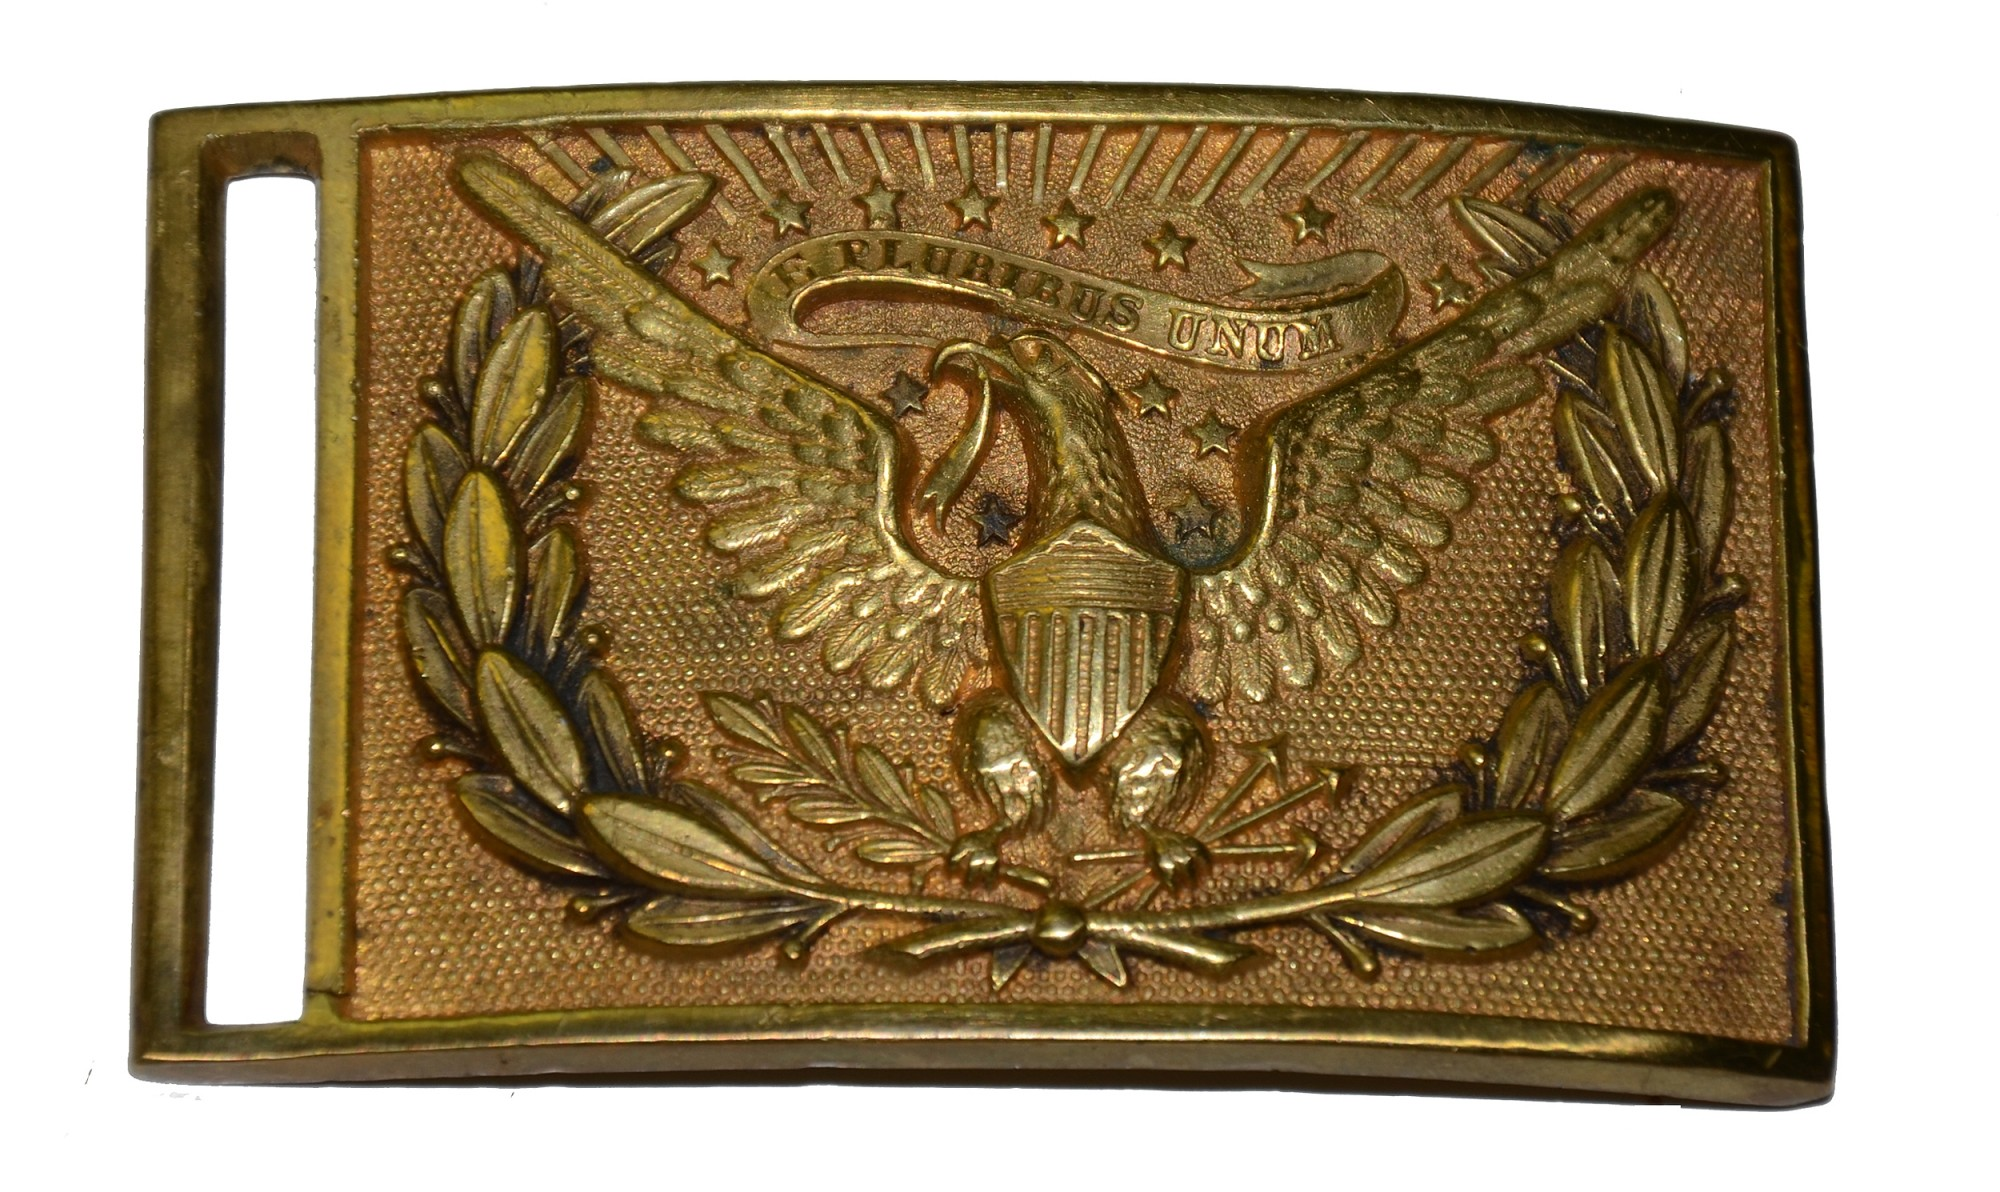 US MODEL 1851 OFFICER'S BELT PLATE WITH REGIMENTAL ID